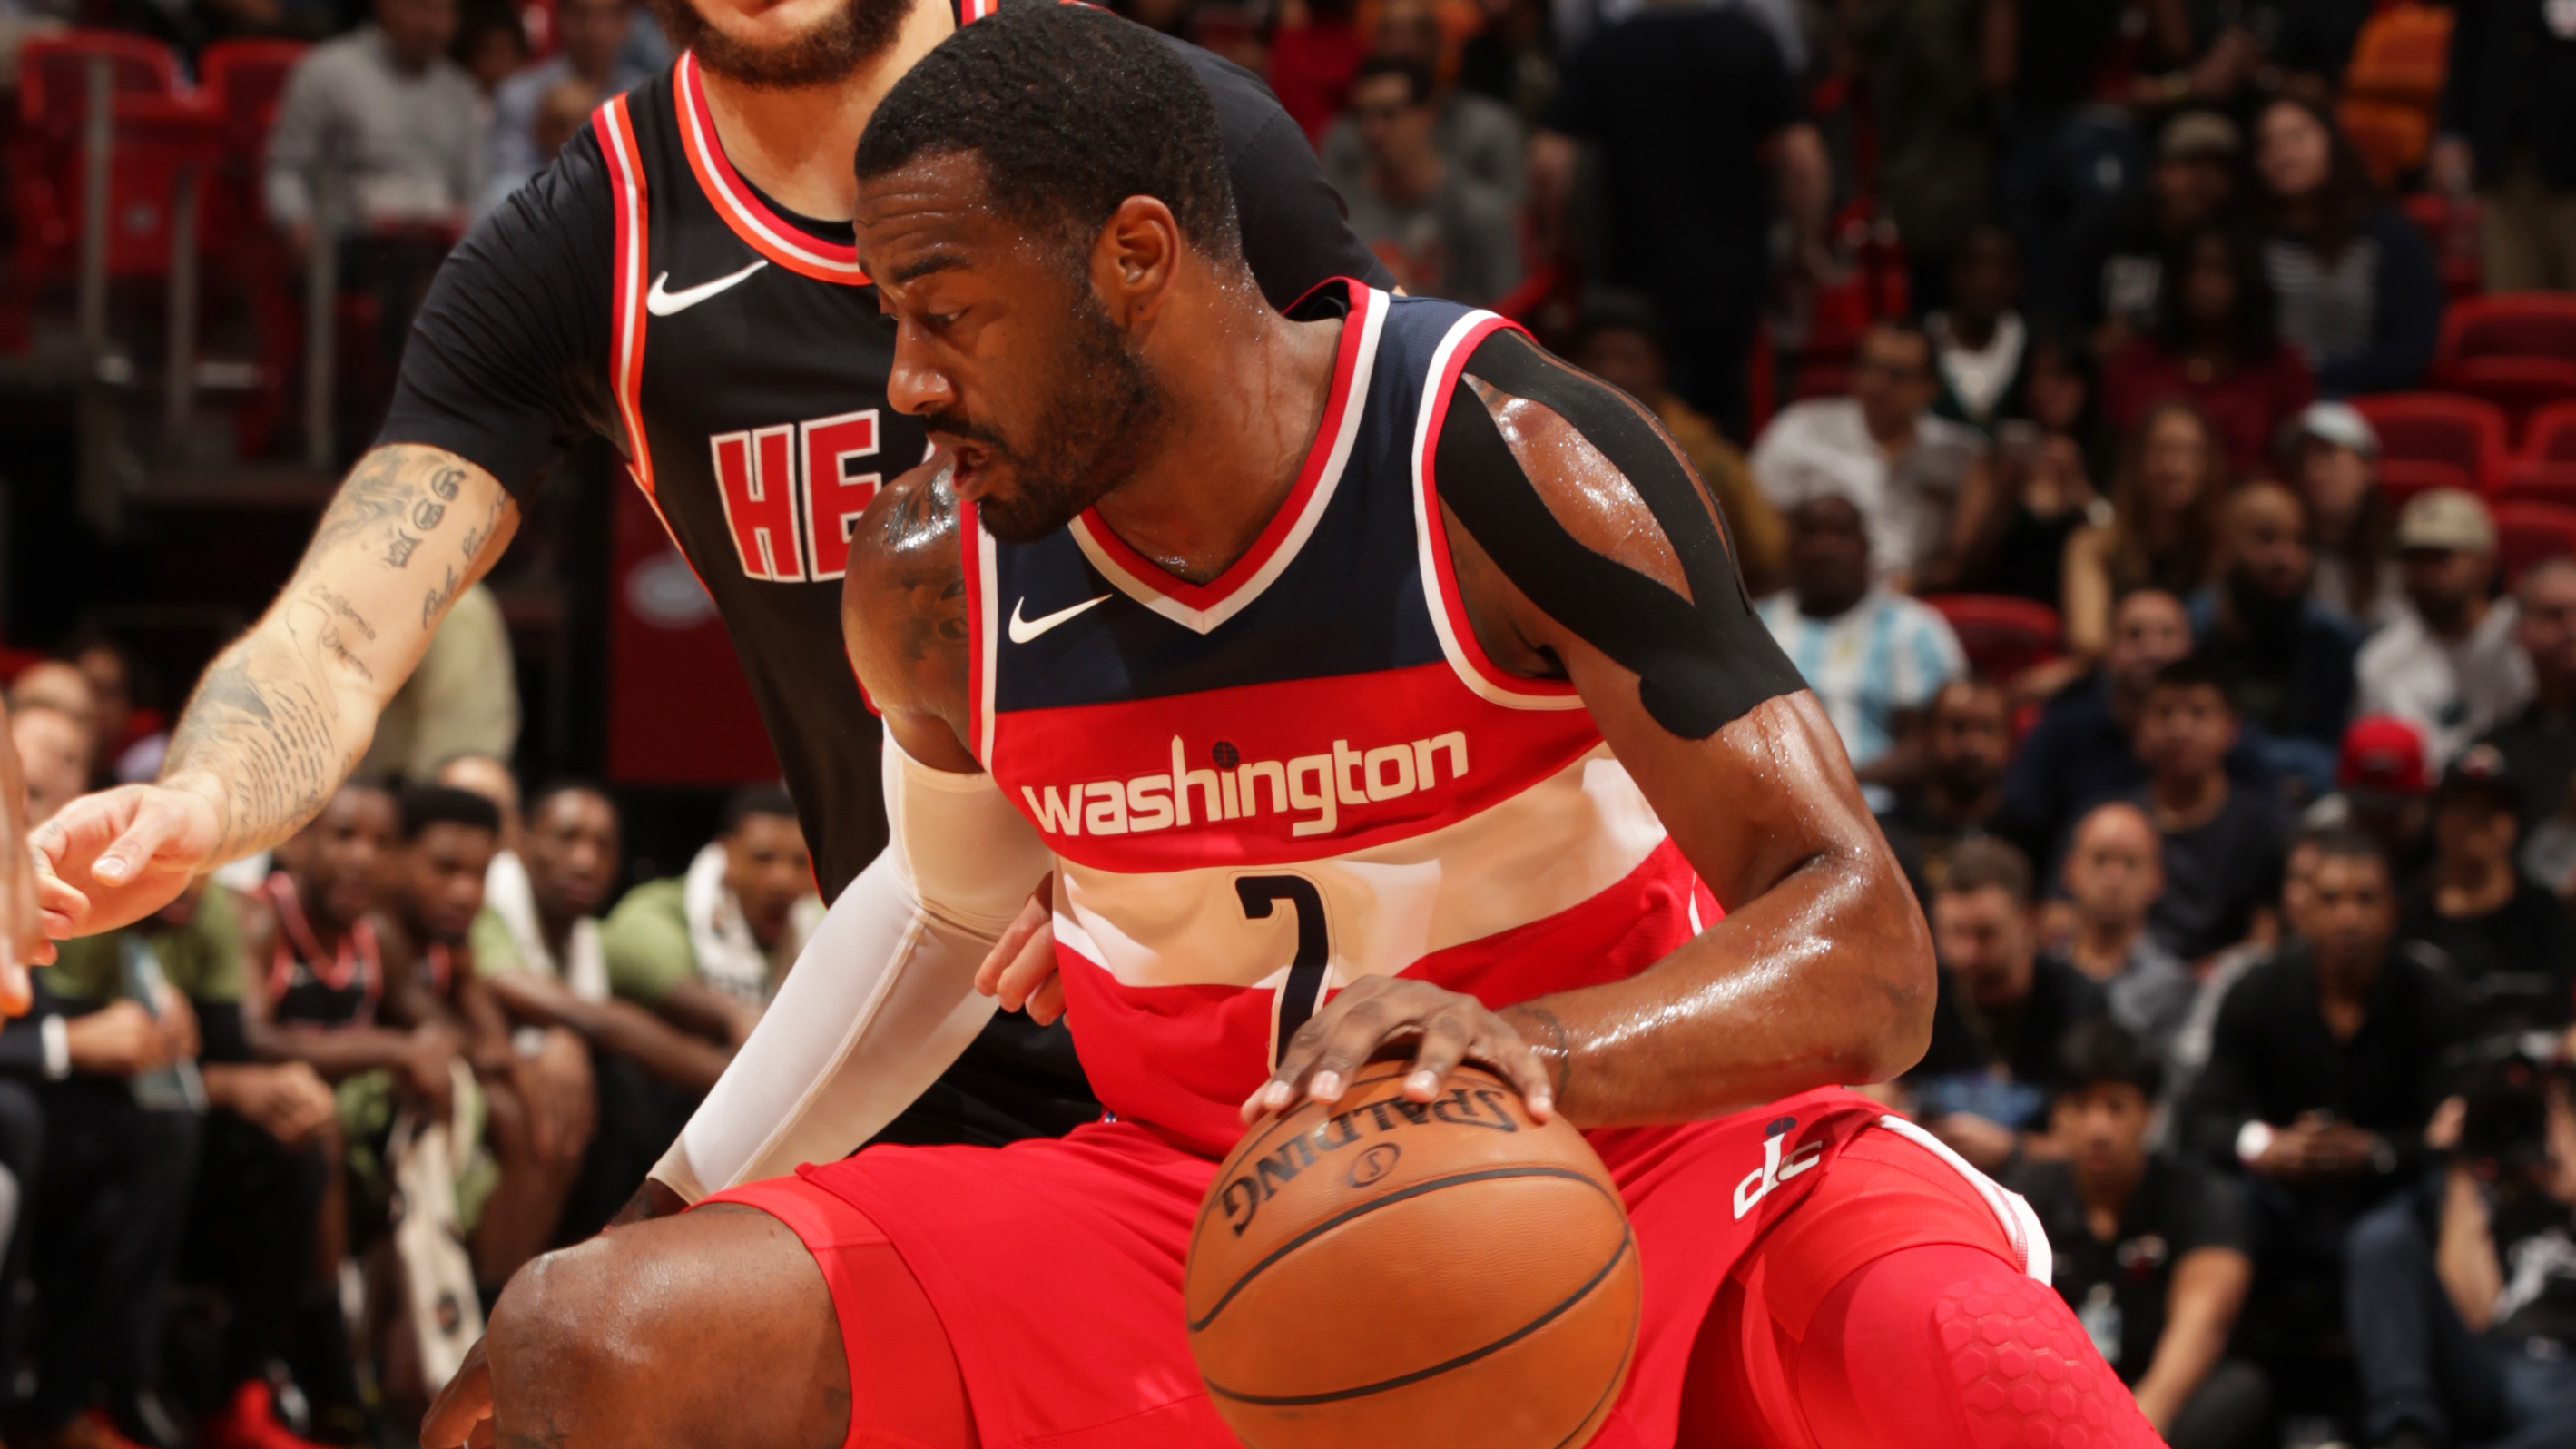 John Wall stats details videos and news